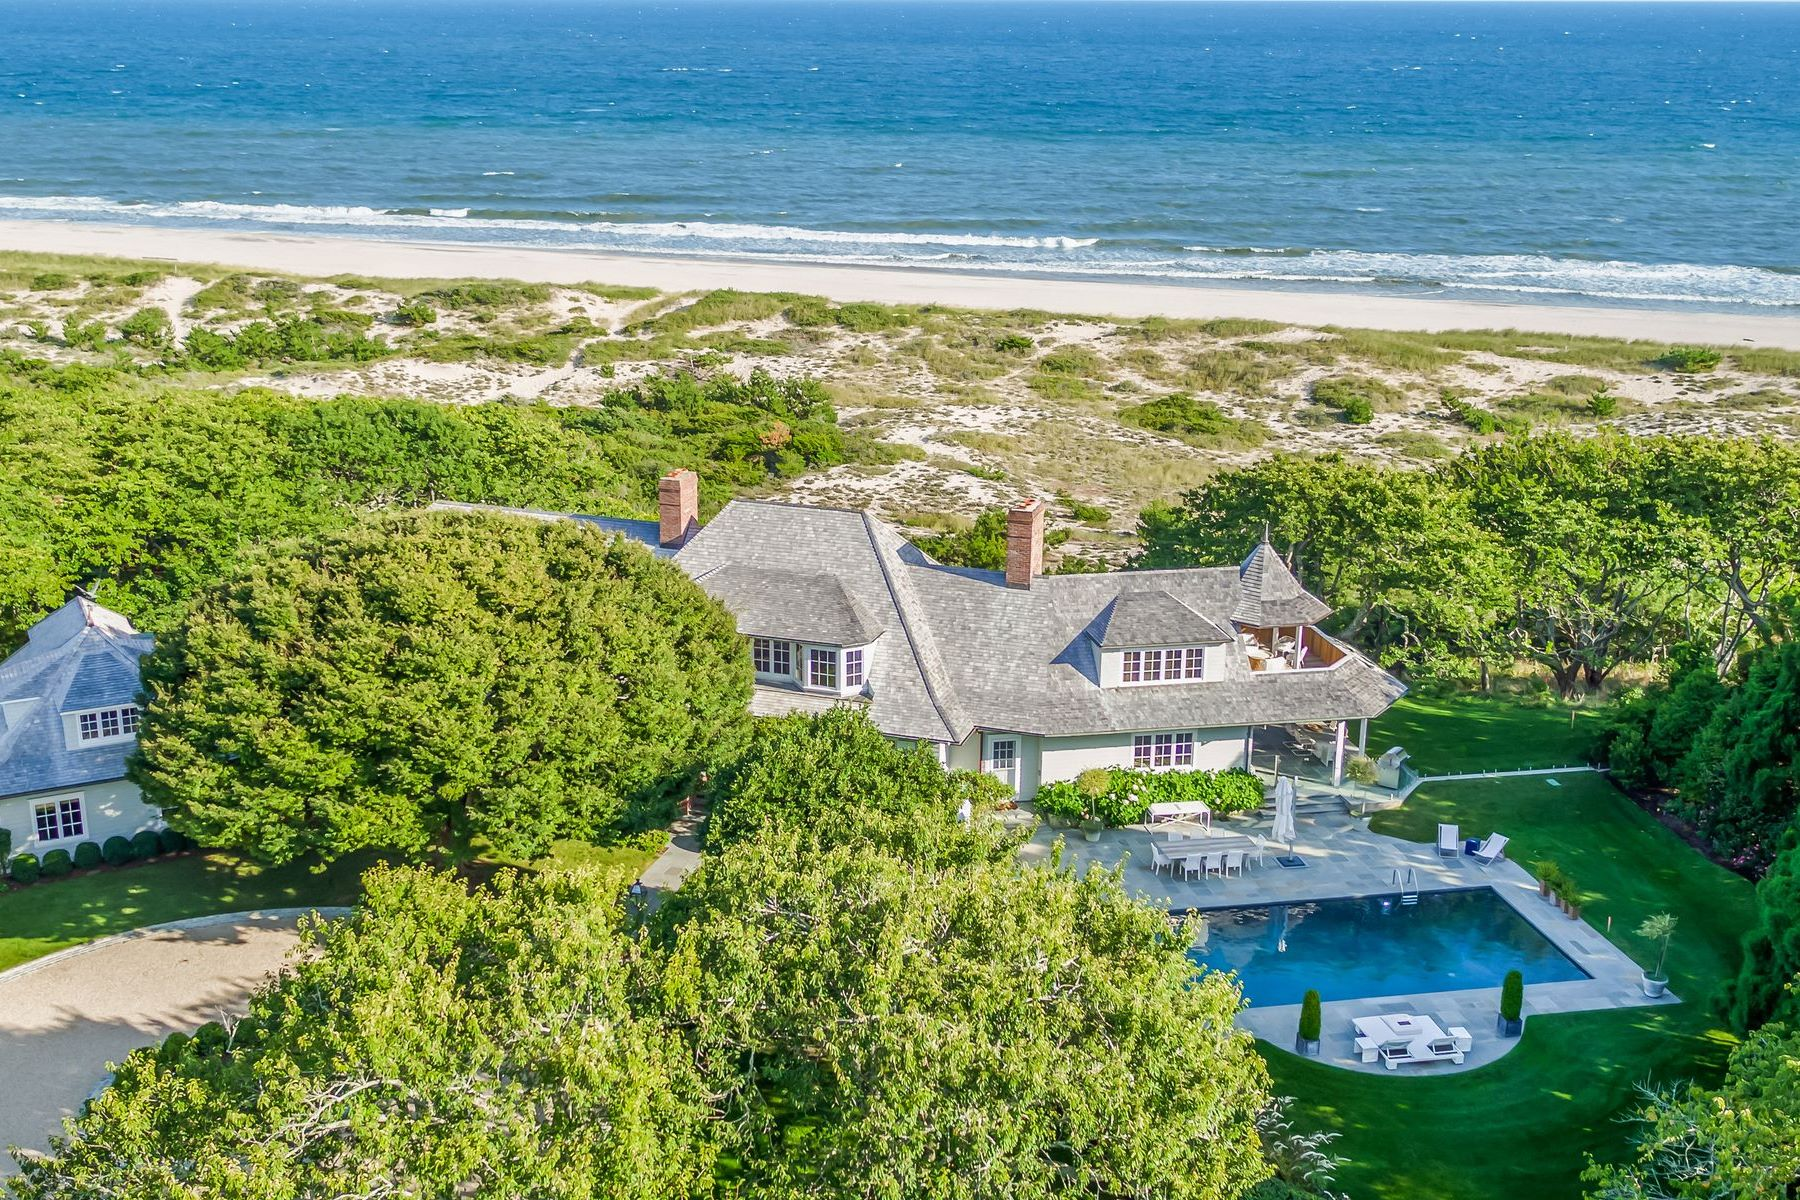 Single Family Homes for Sale at East Hampton Oceanfront Estate 32 Windmill Lane East Hampton, New York 11937 United States